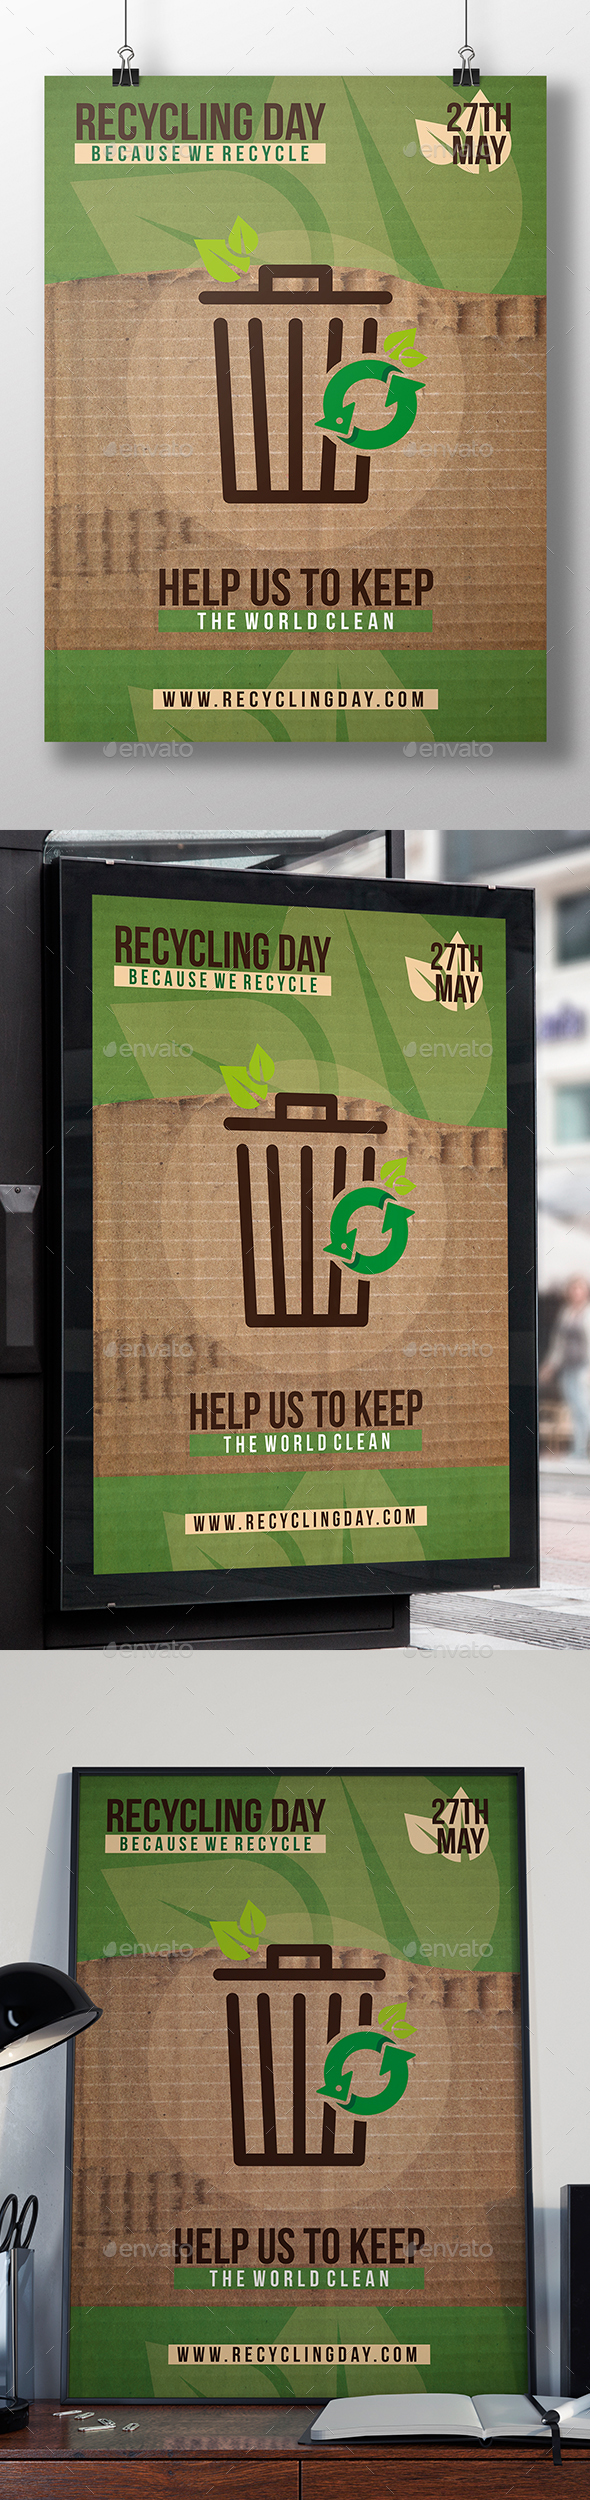 Recycling Event Flyer Template - Miscellaneous Events